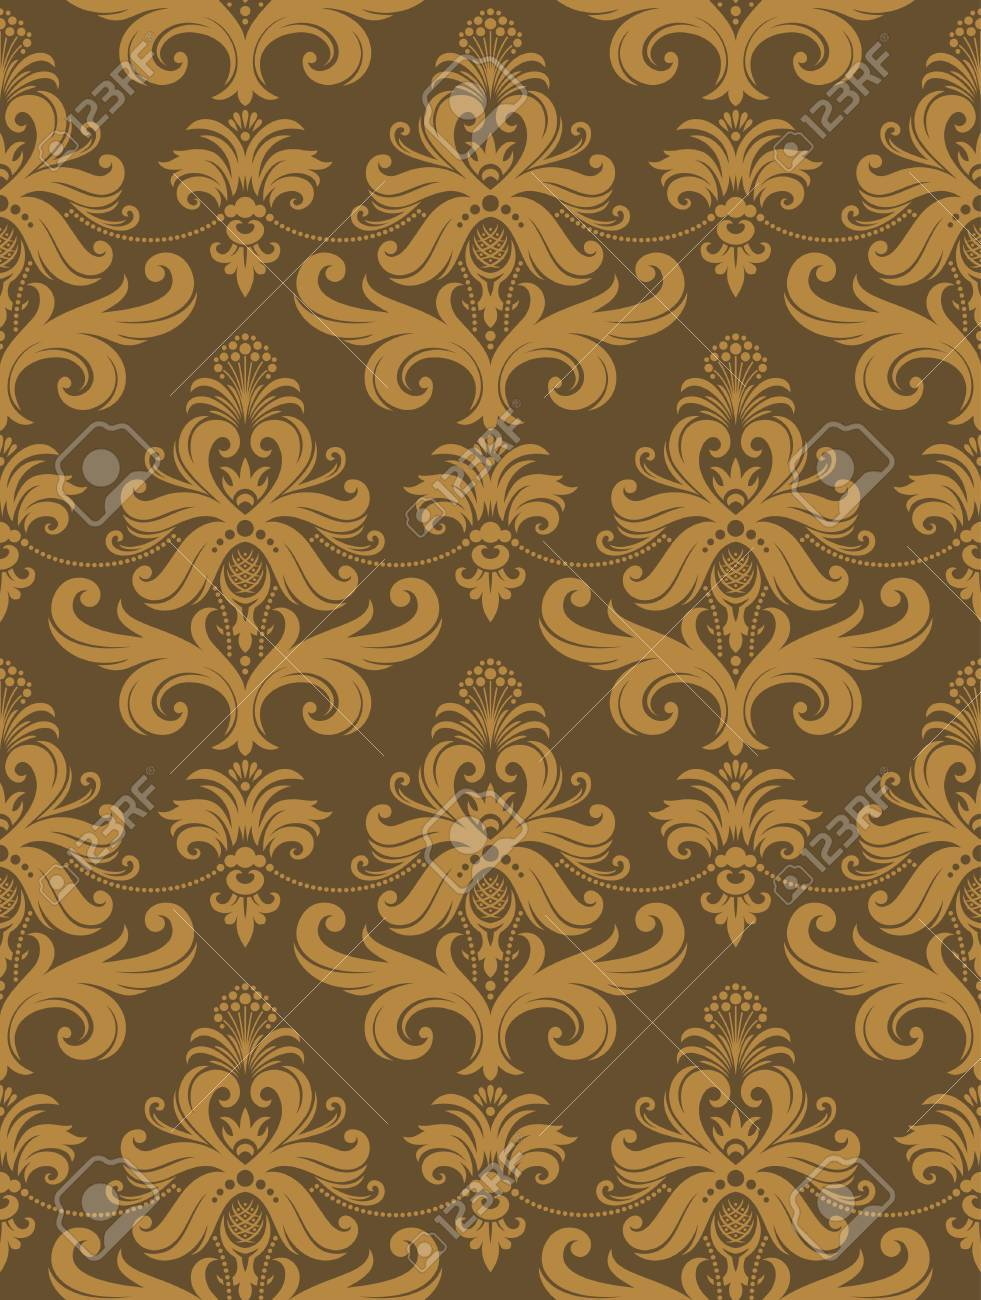 Seamless background from a floral ornament, Fashionable modern wallpaper or textile Stock Vector - 7085357